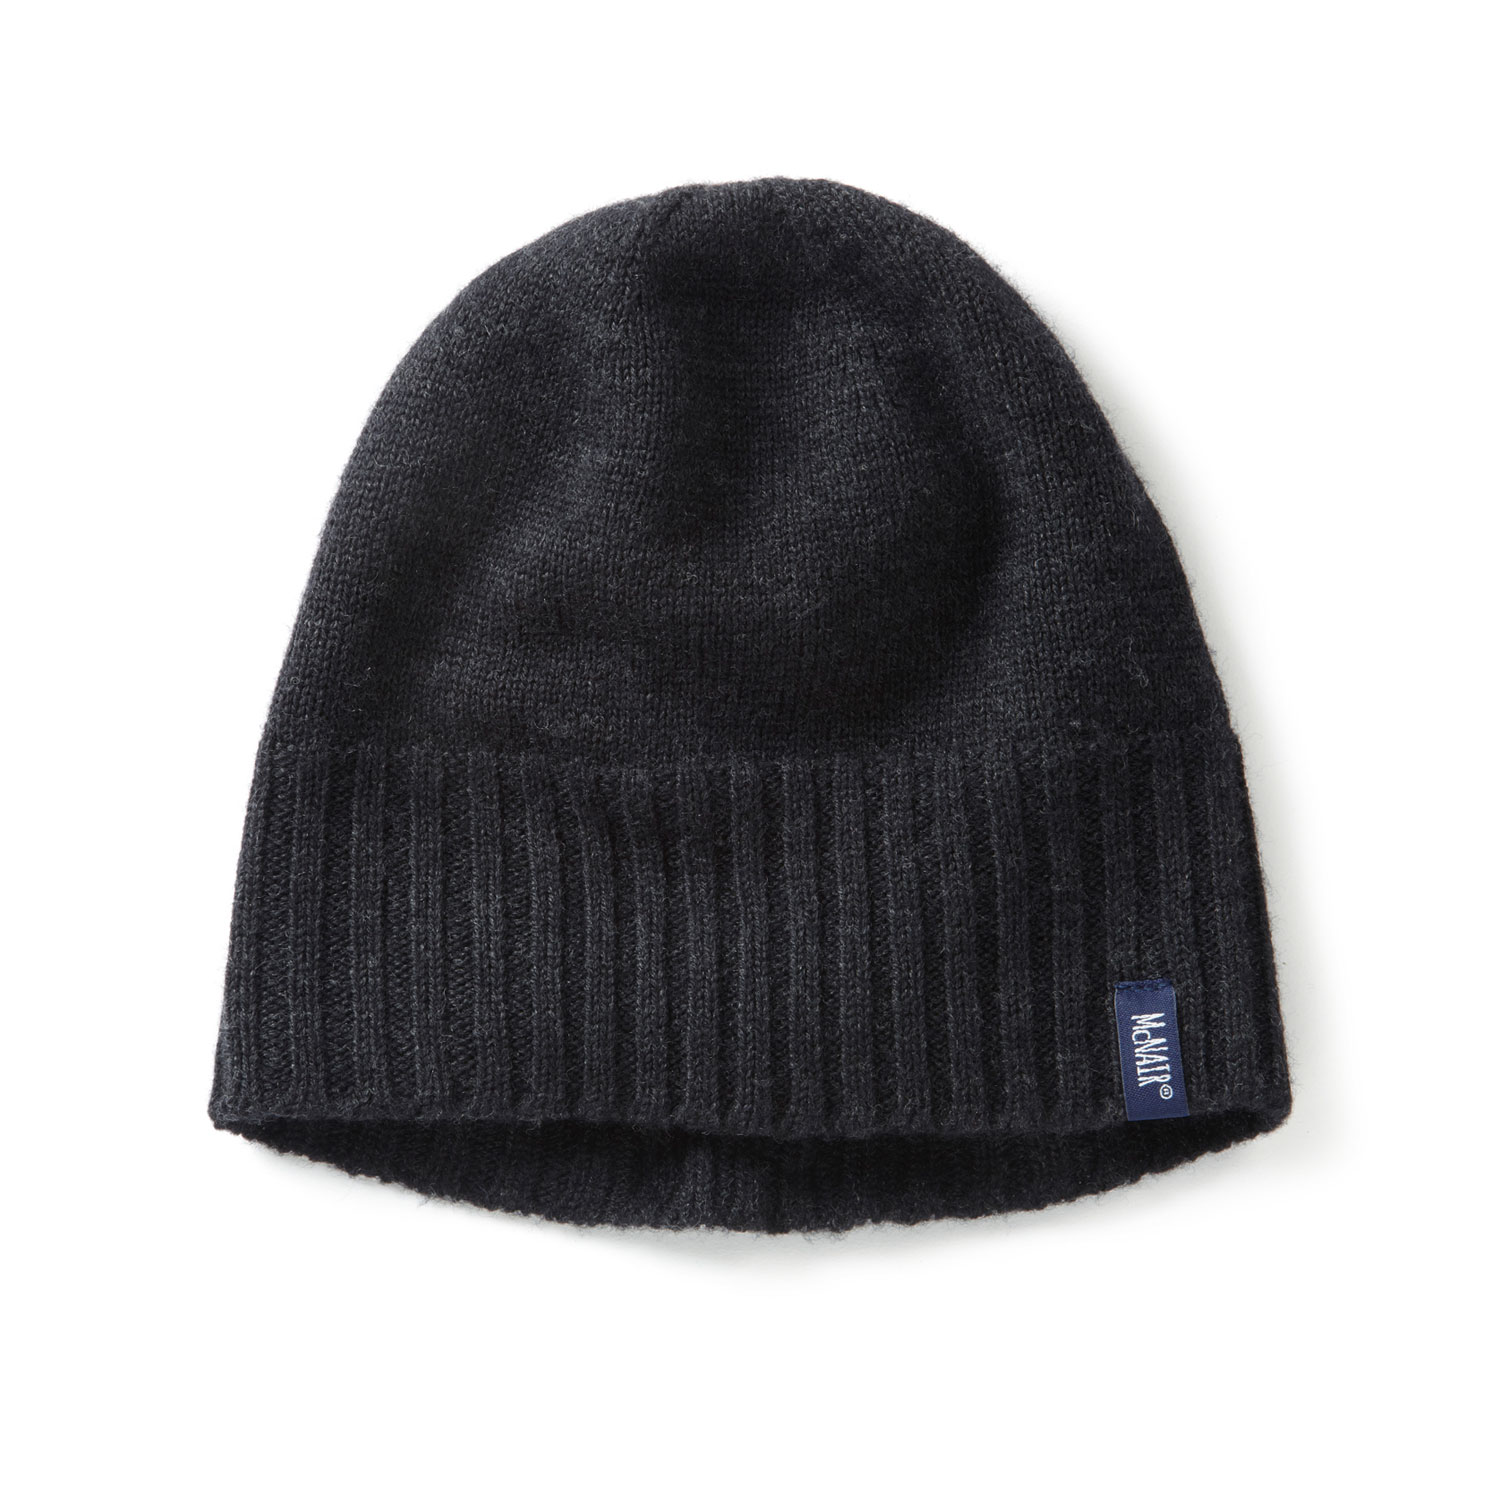 McNair women's beanie hat in charcoal